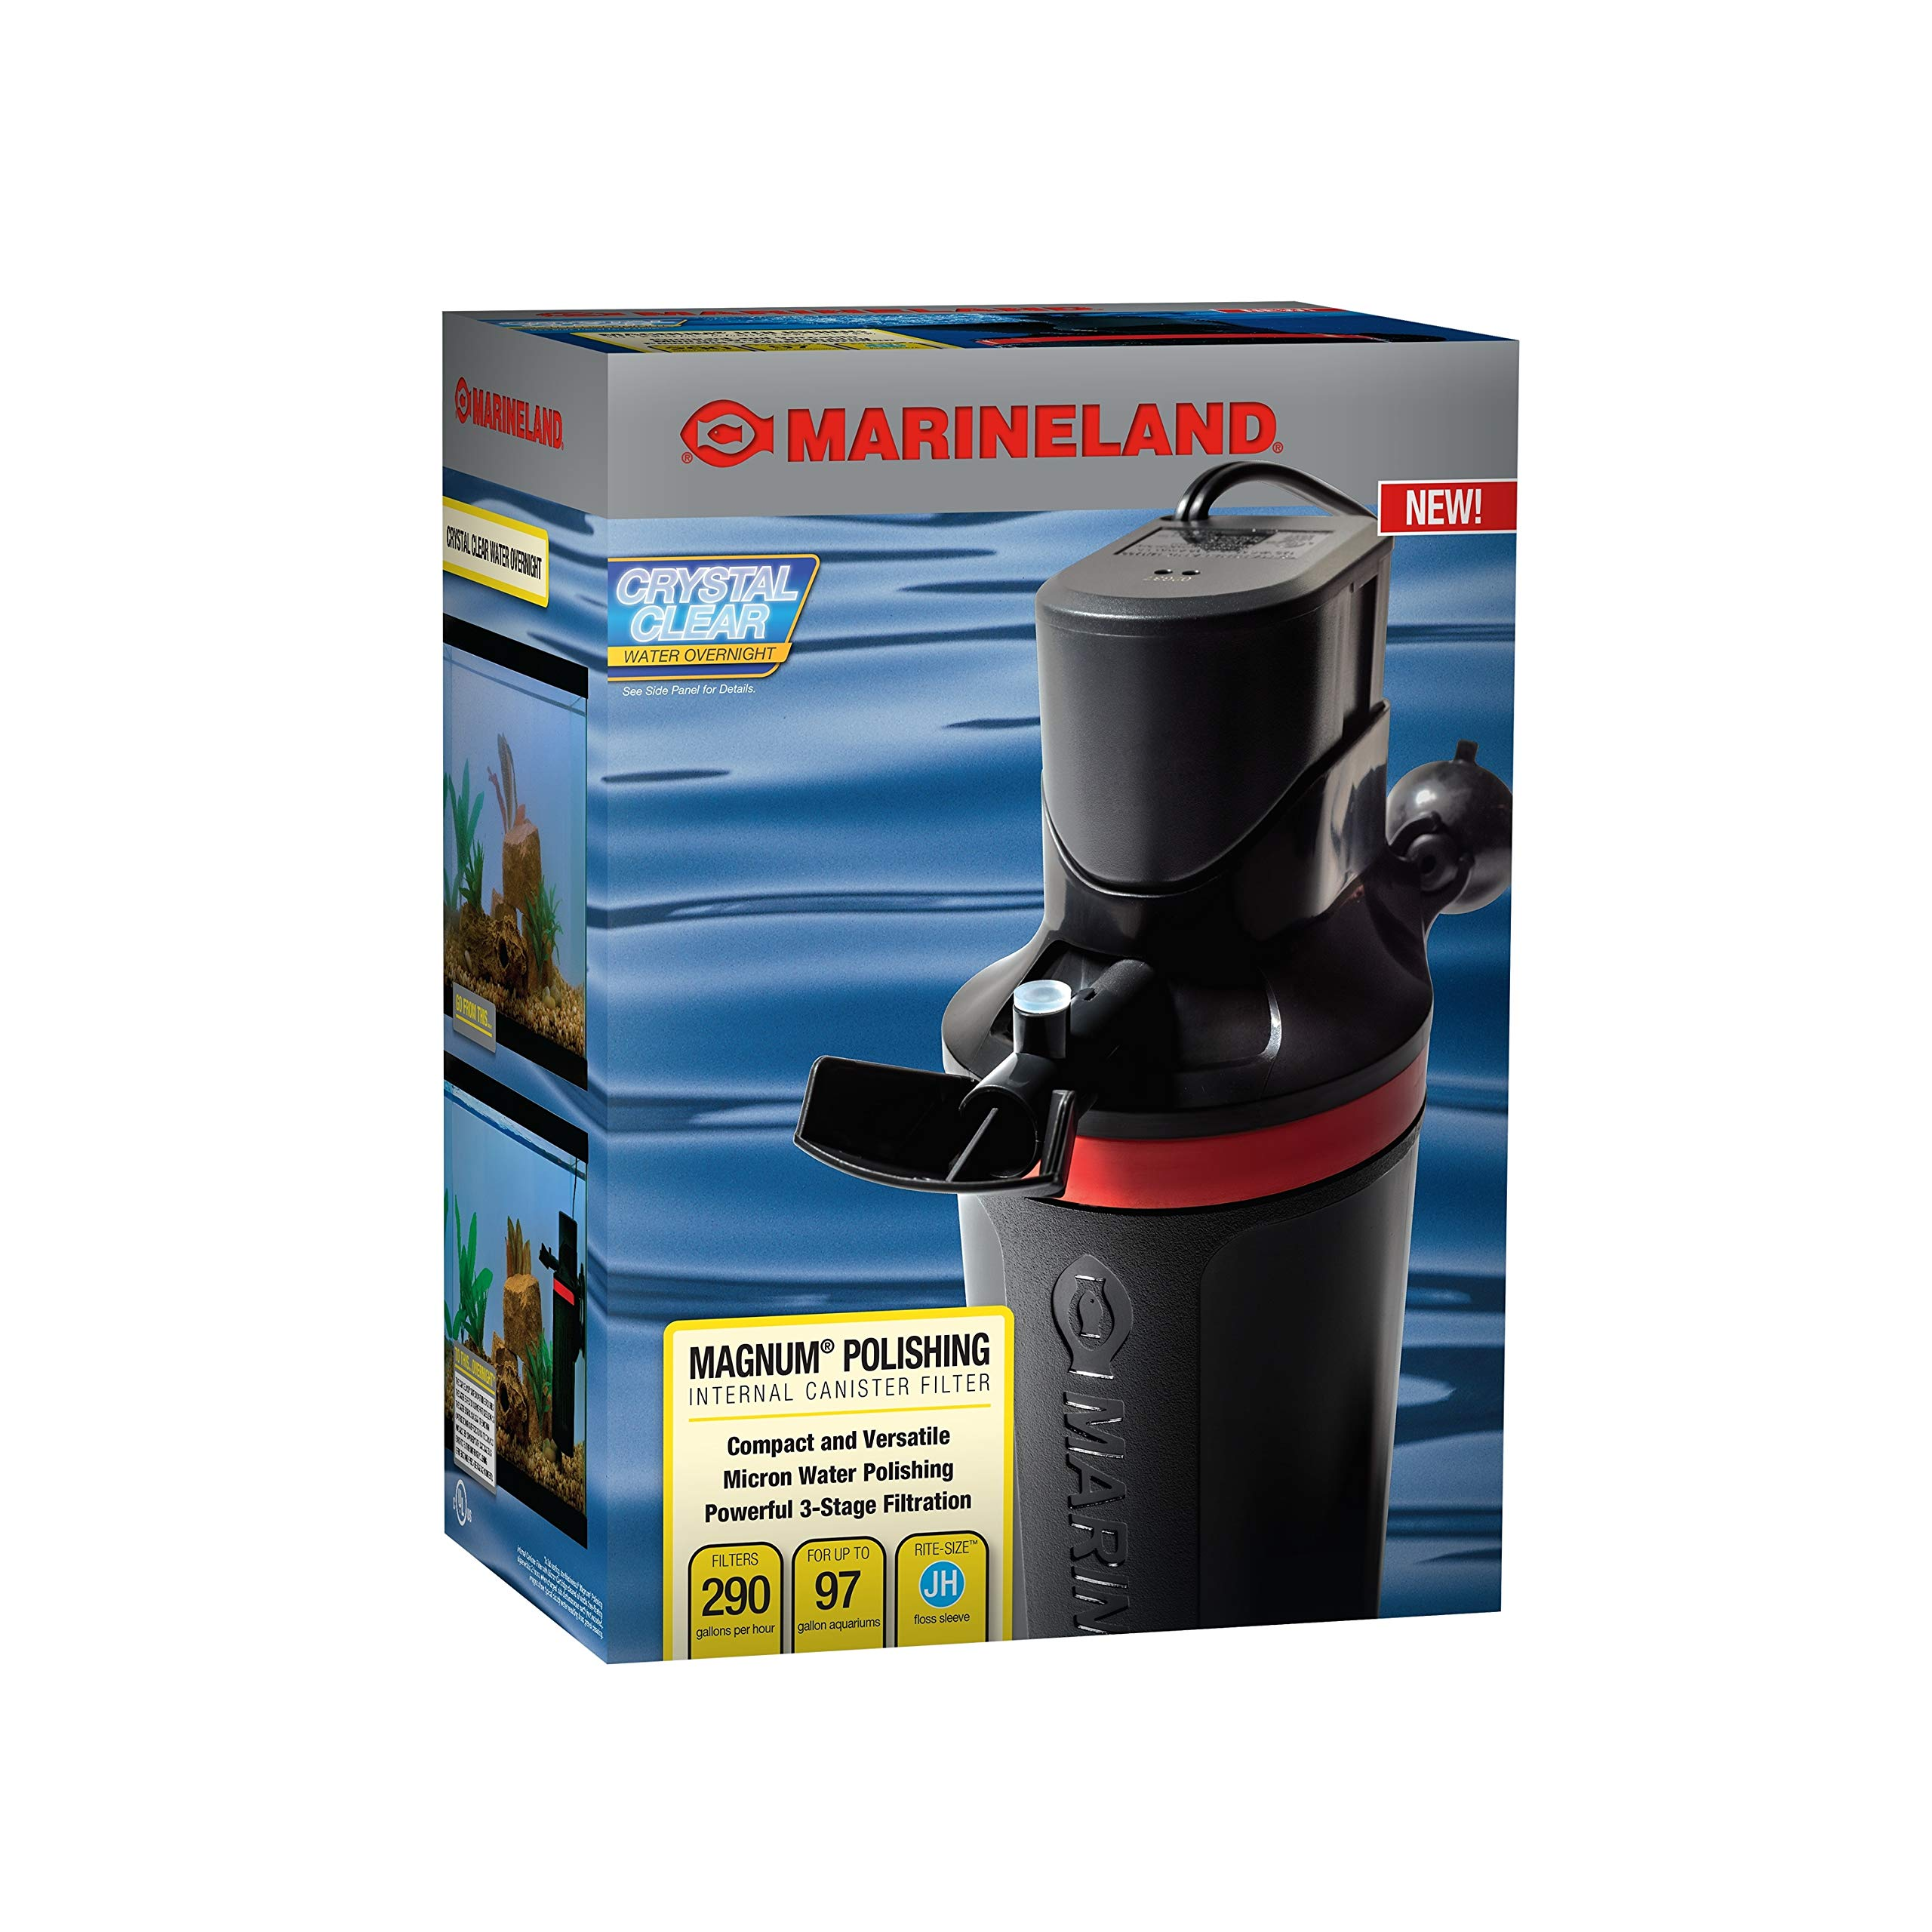 Marineland Magnum Polishing Internal Canister Filter (ML90770) by MarineLand